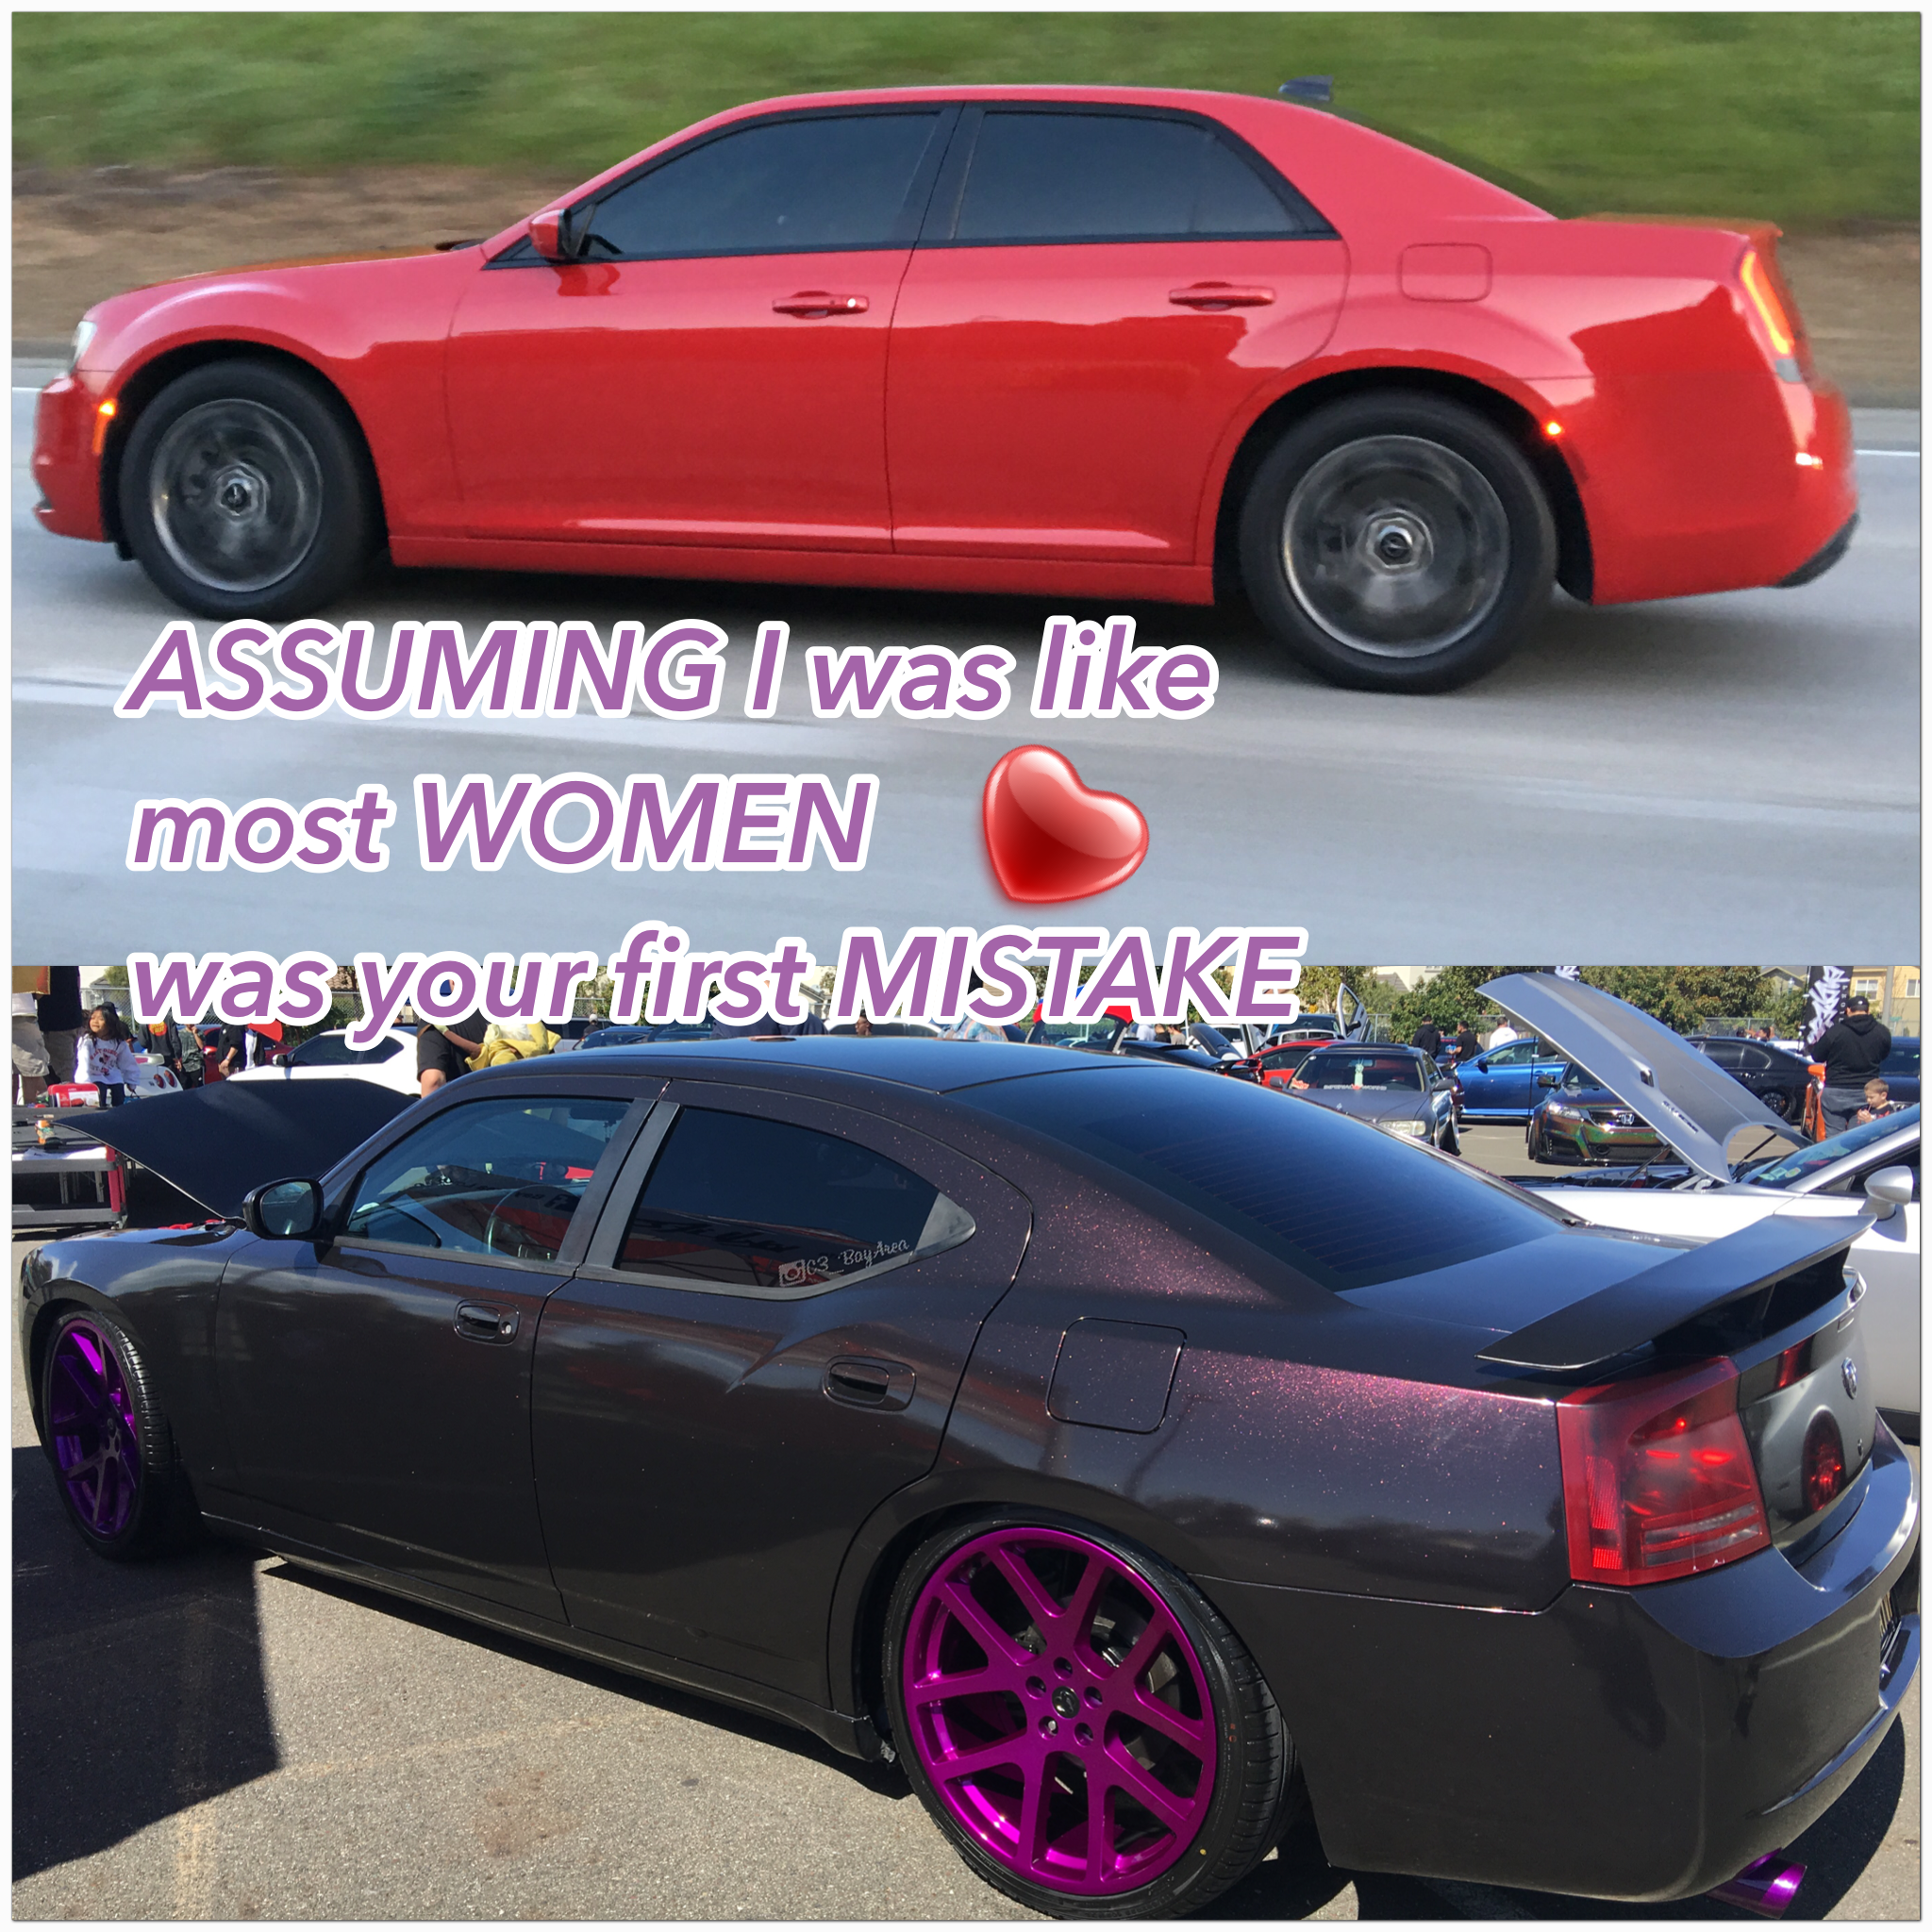 300 Charger Mobile Musclecar Women Love Cars To Mopar Muscle Cars Love Car